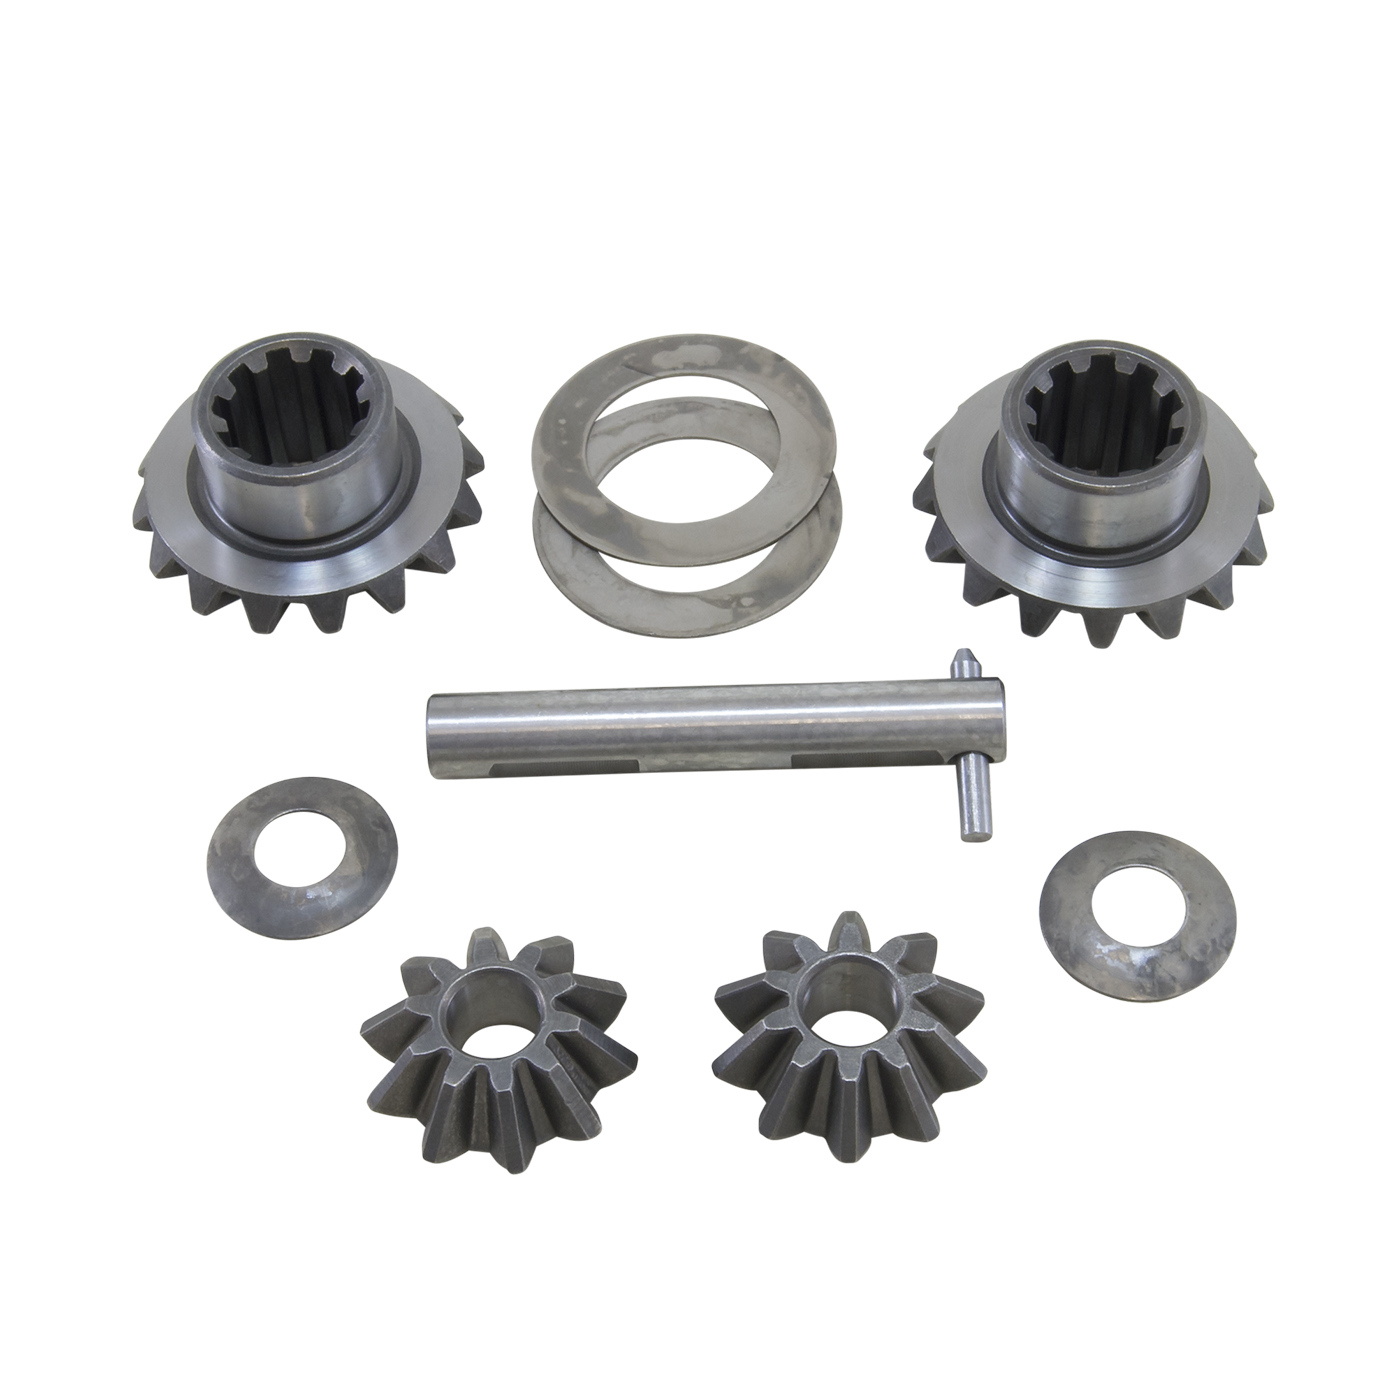 YPKD27-S-10 - Yukon standard open spider gear replacement kit for Dana 25 and 27 with 10 spline axles